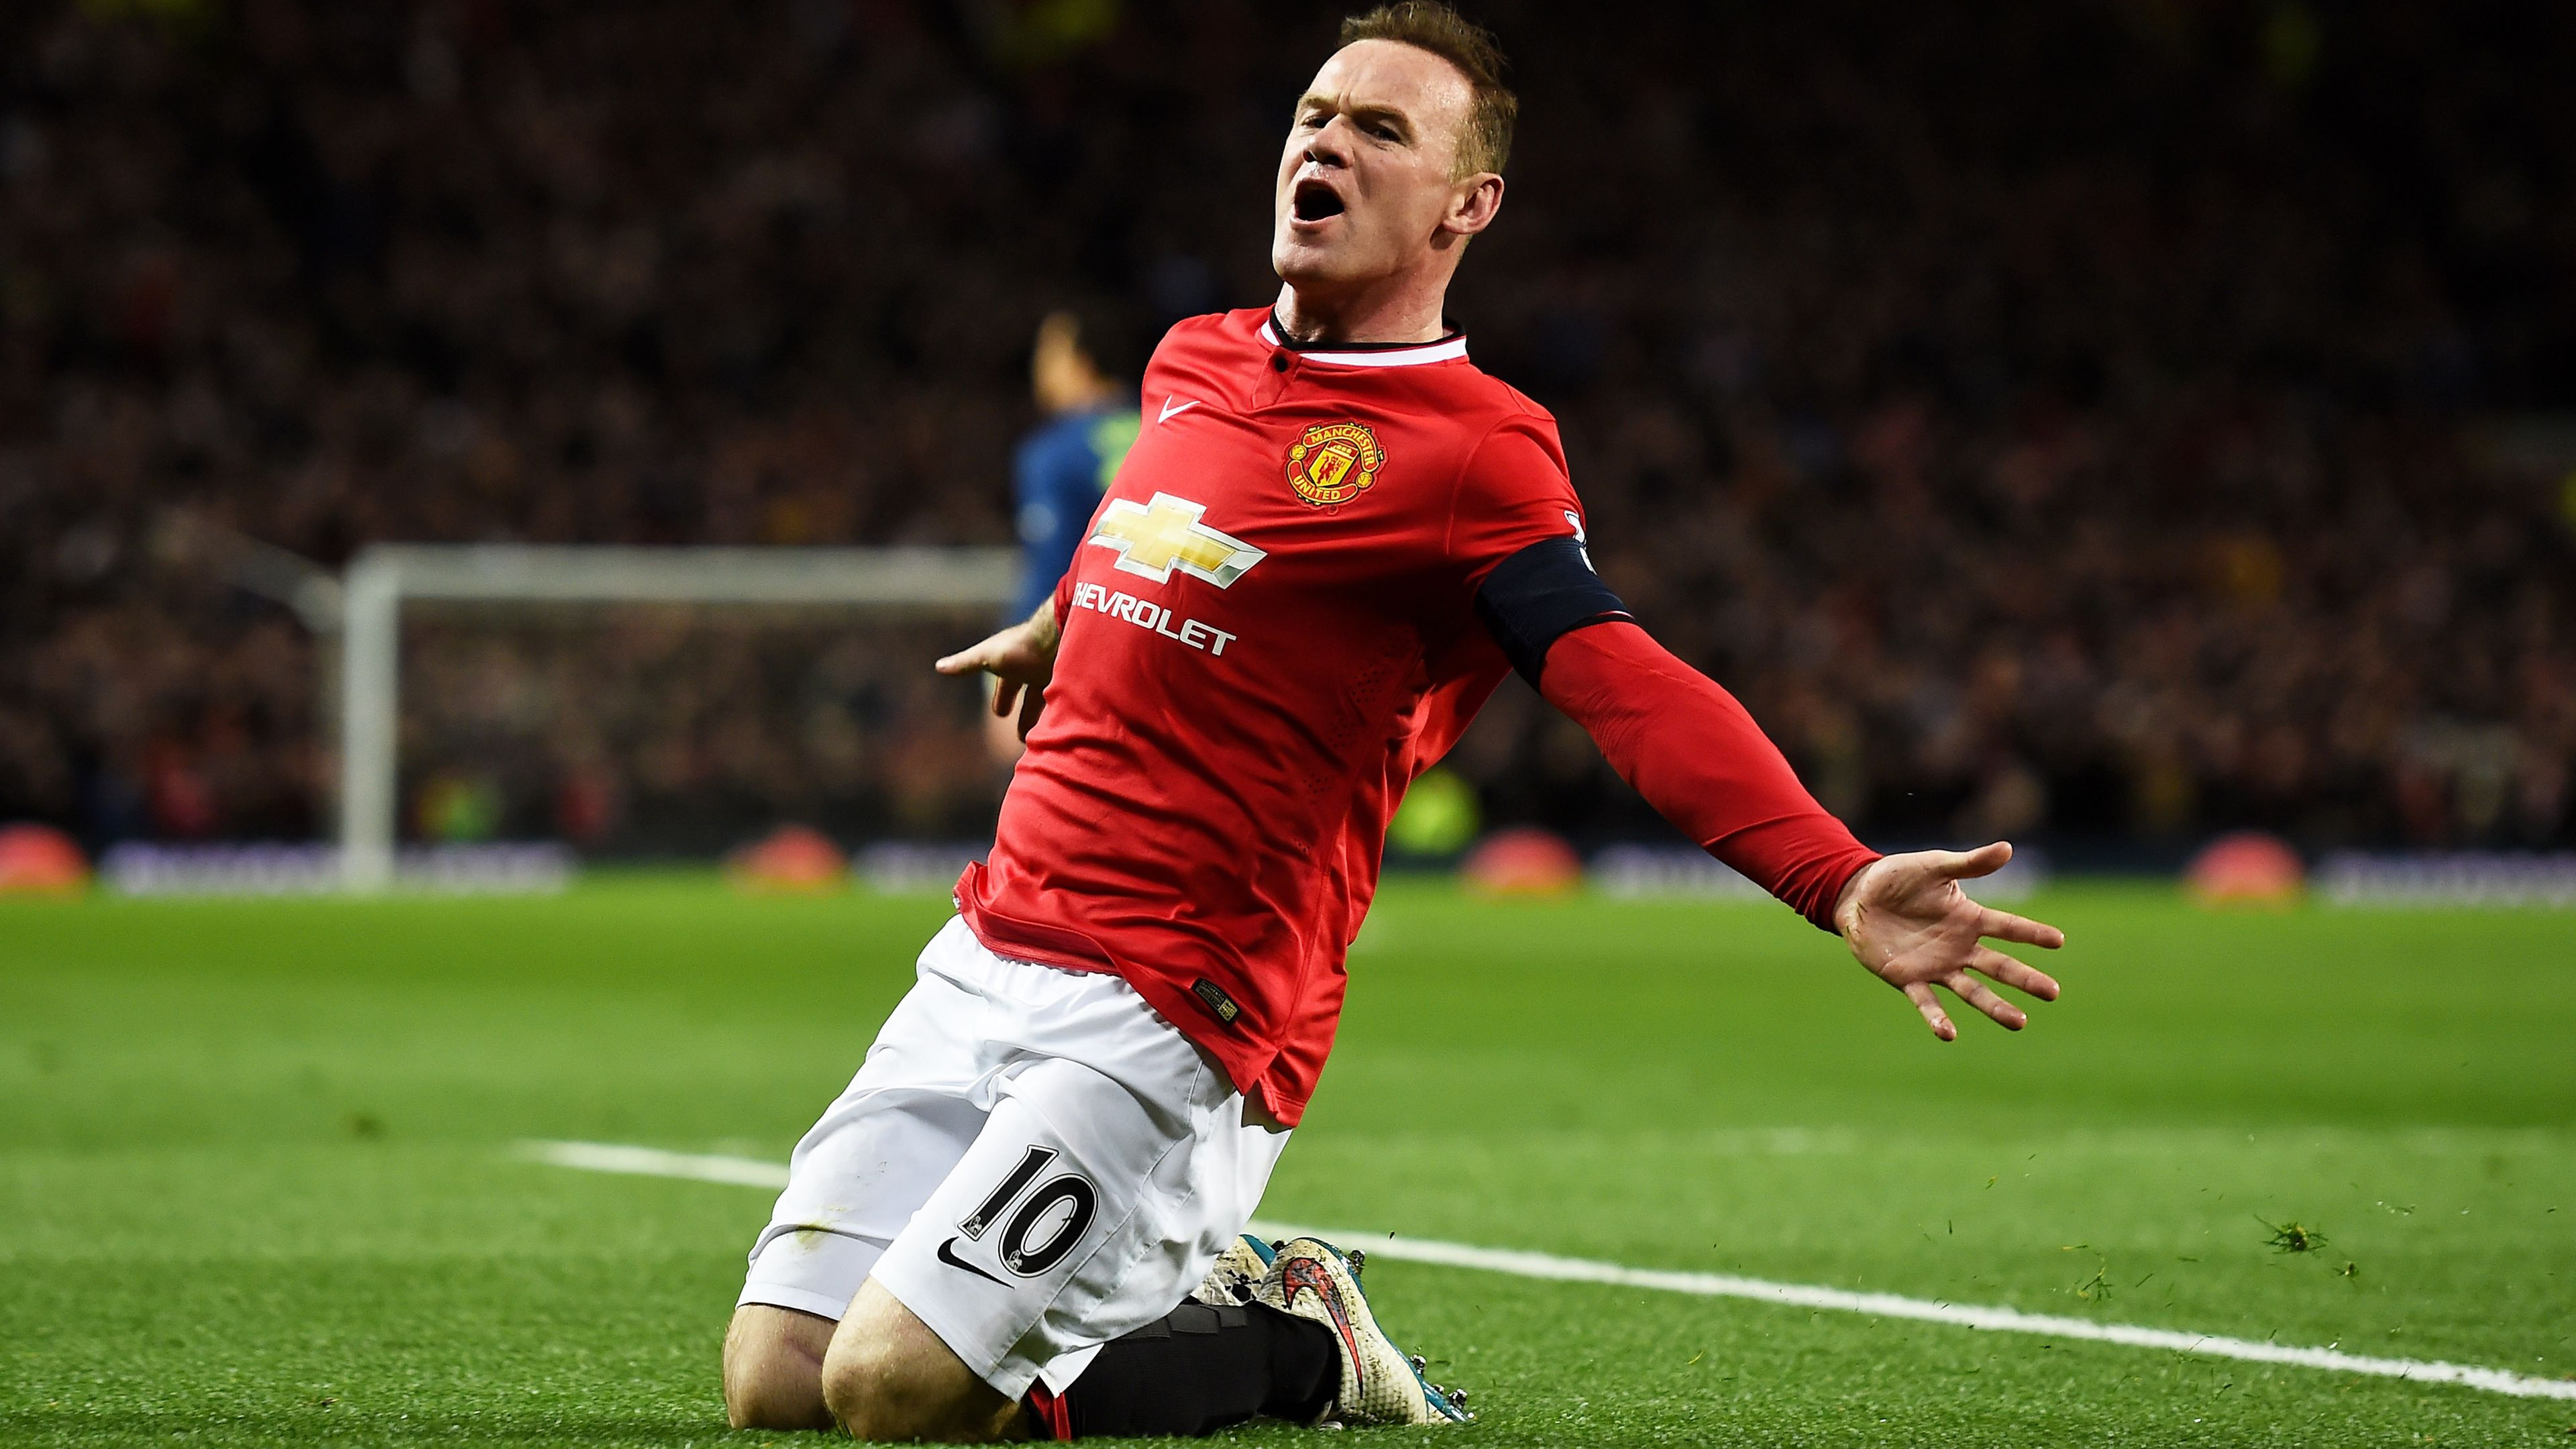 England and Manchester United legend Wayne Rooney hangs up the boots to become a manager